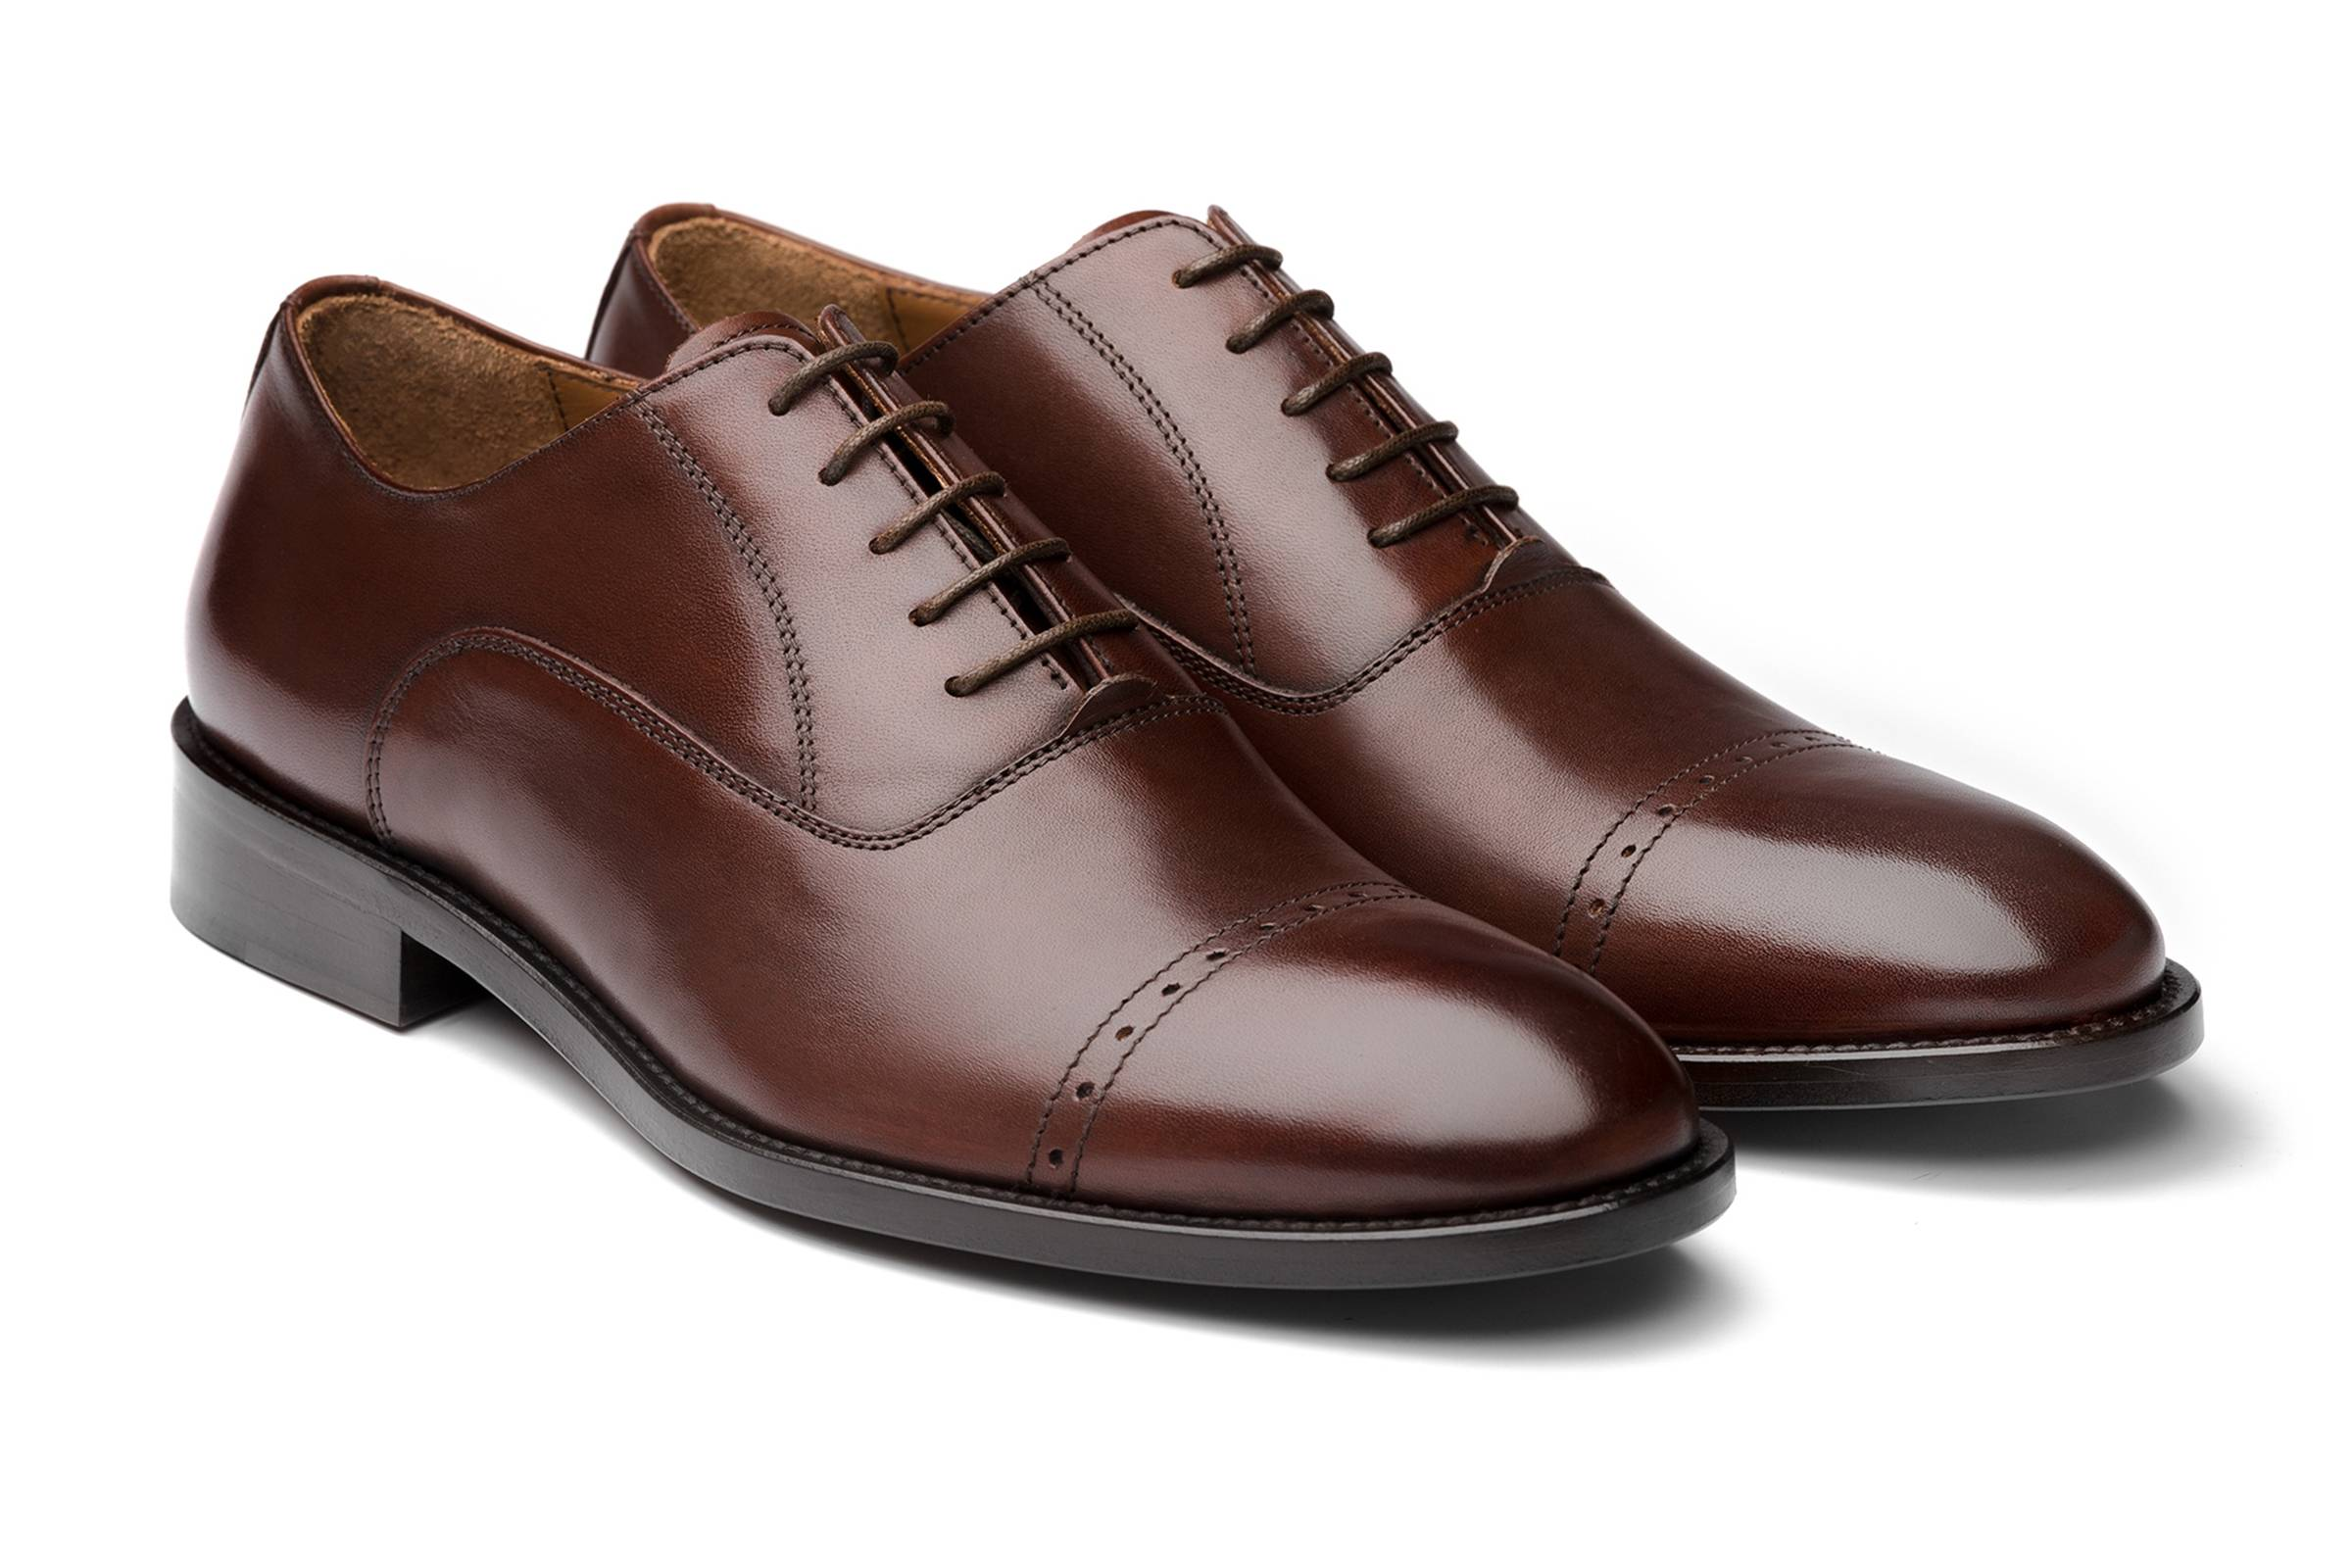 Quarter Brogues